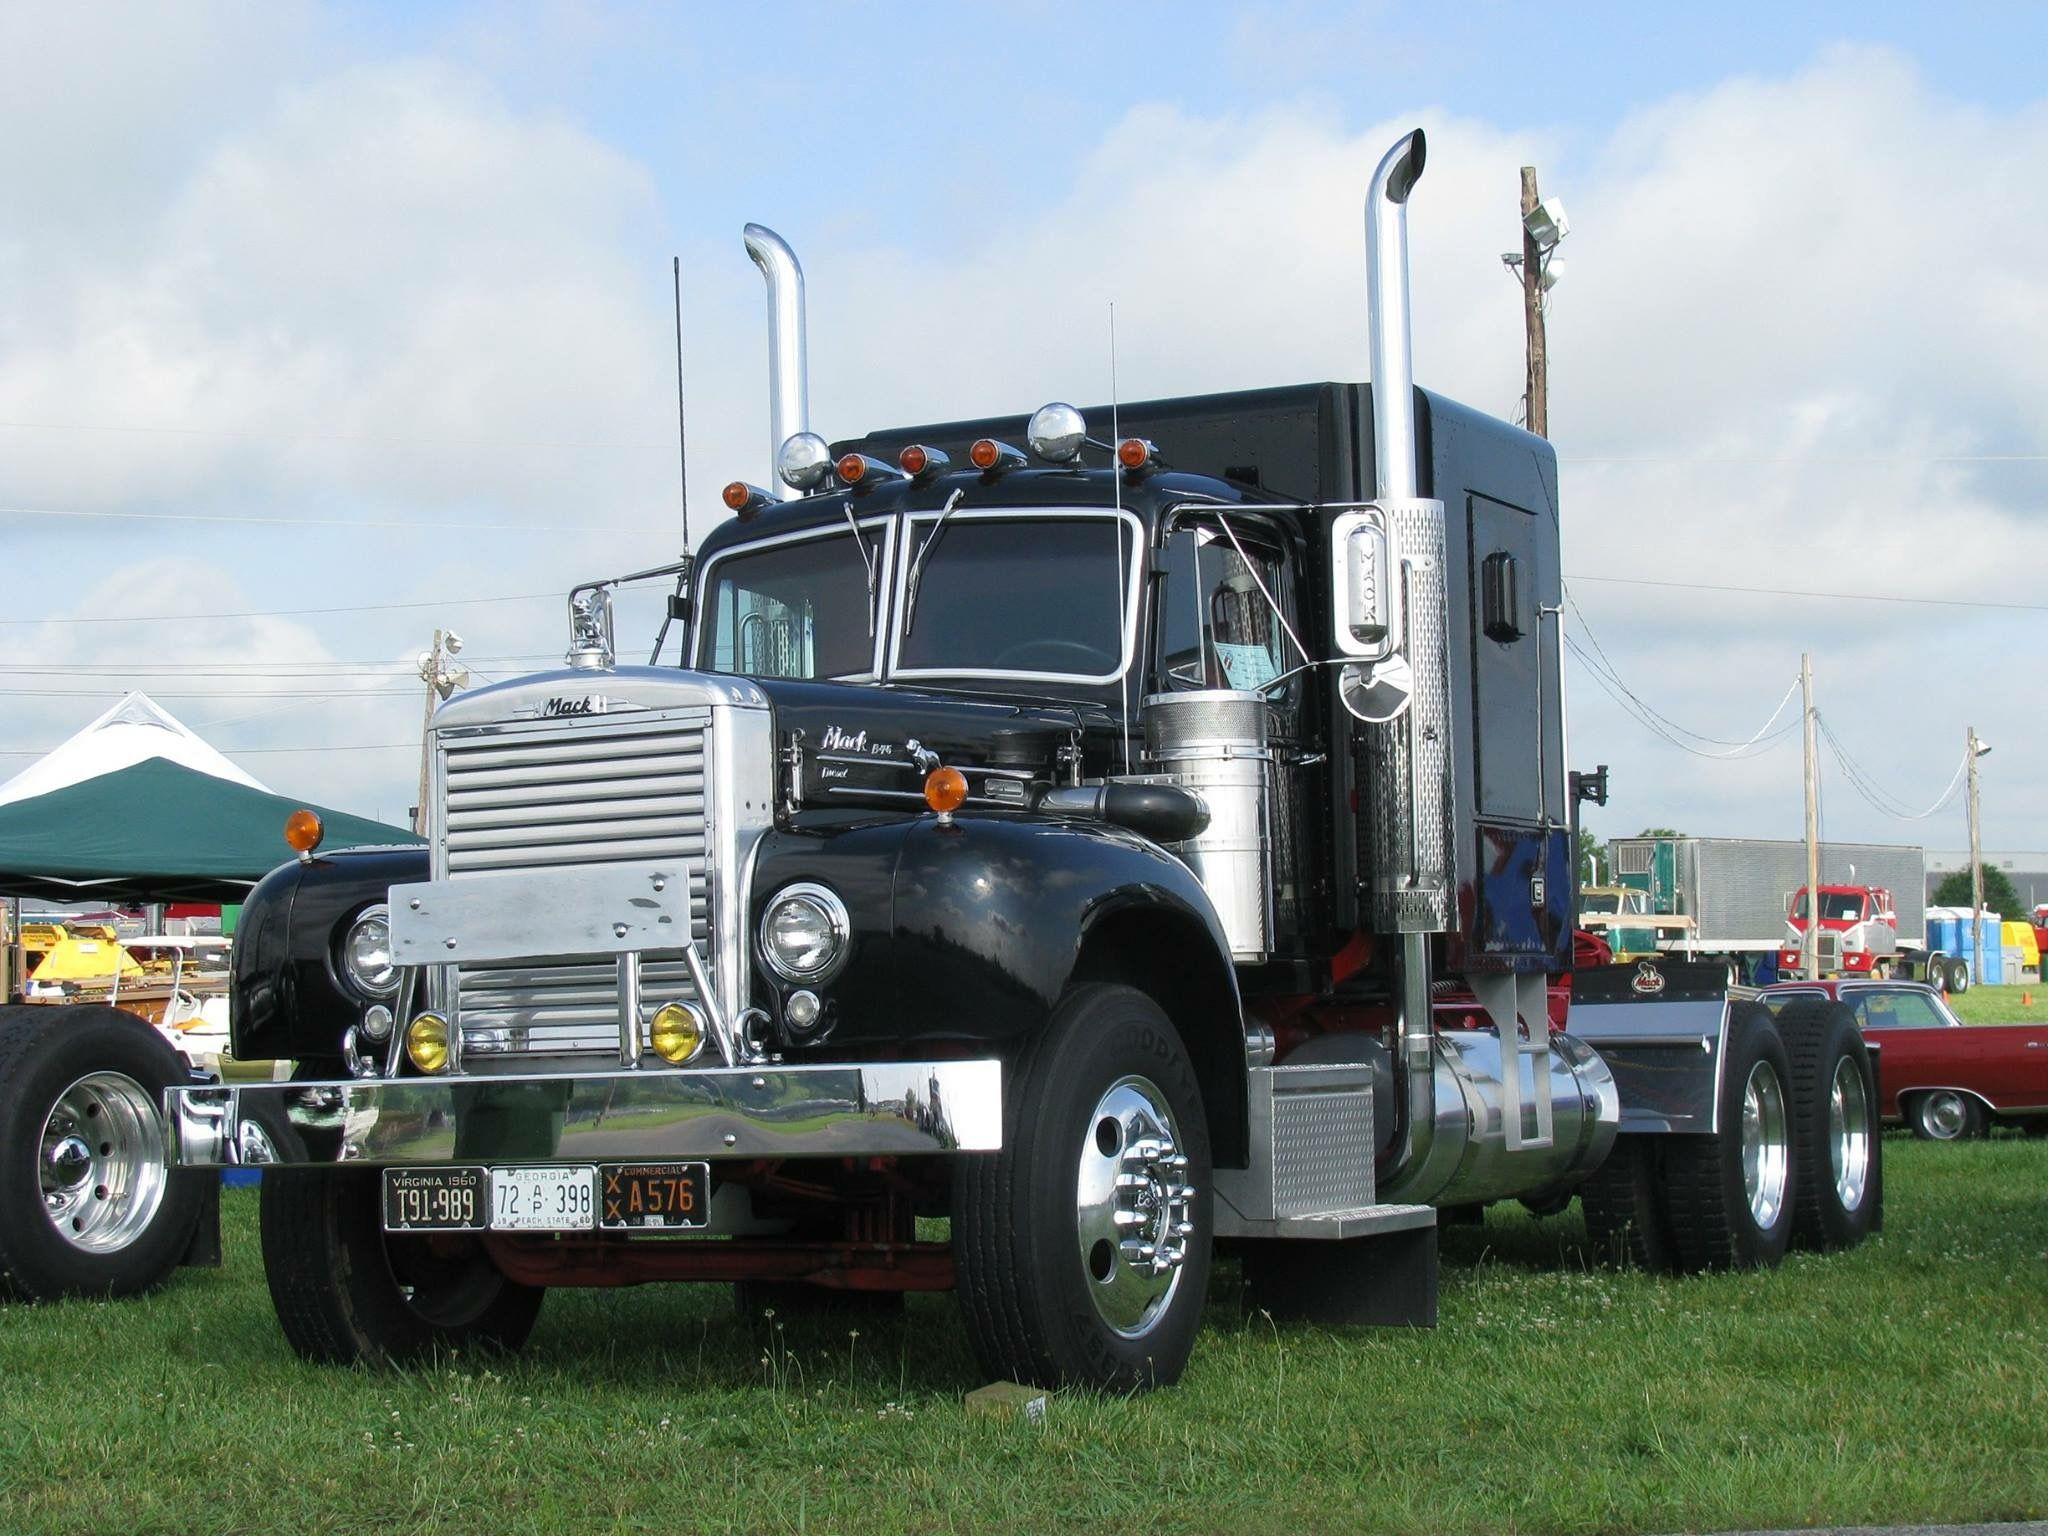 B75 Mack Us Trailer Can Rent Used Trailers In Any Condition To